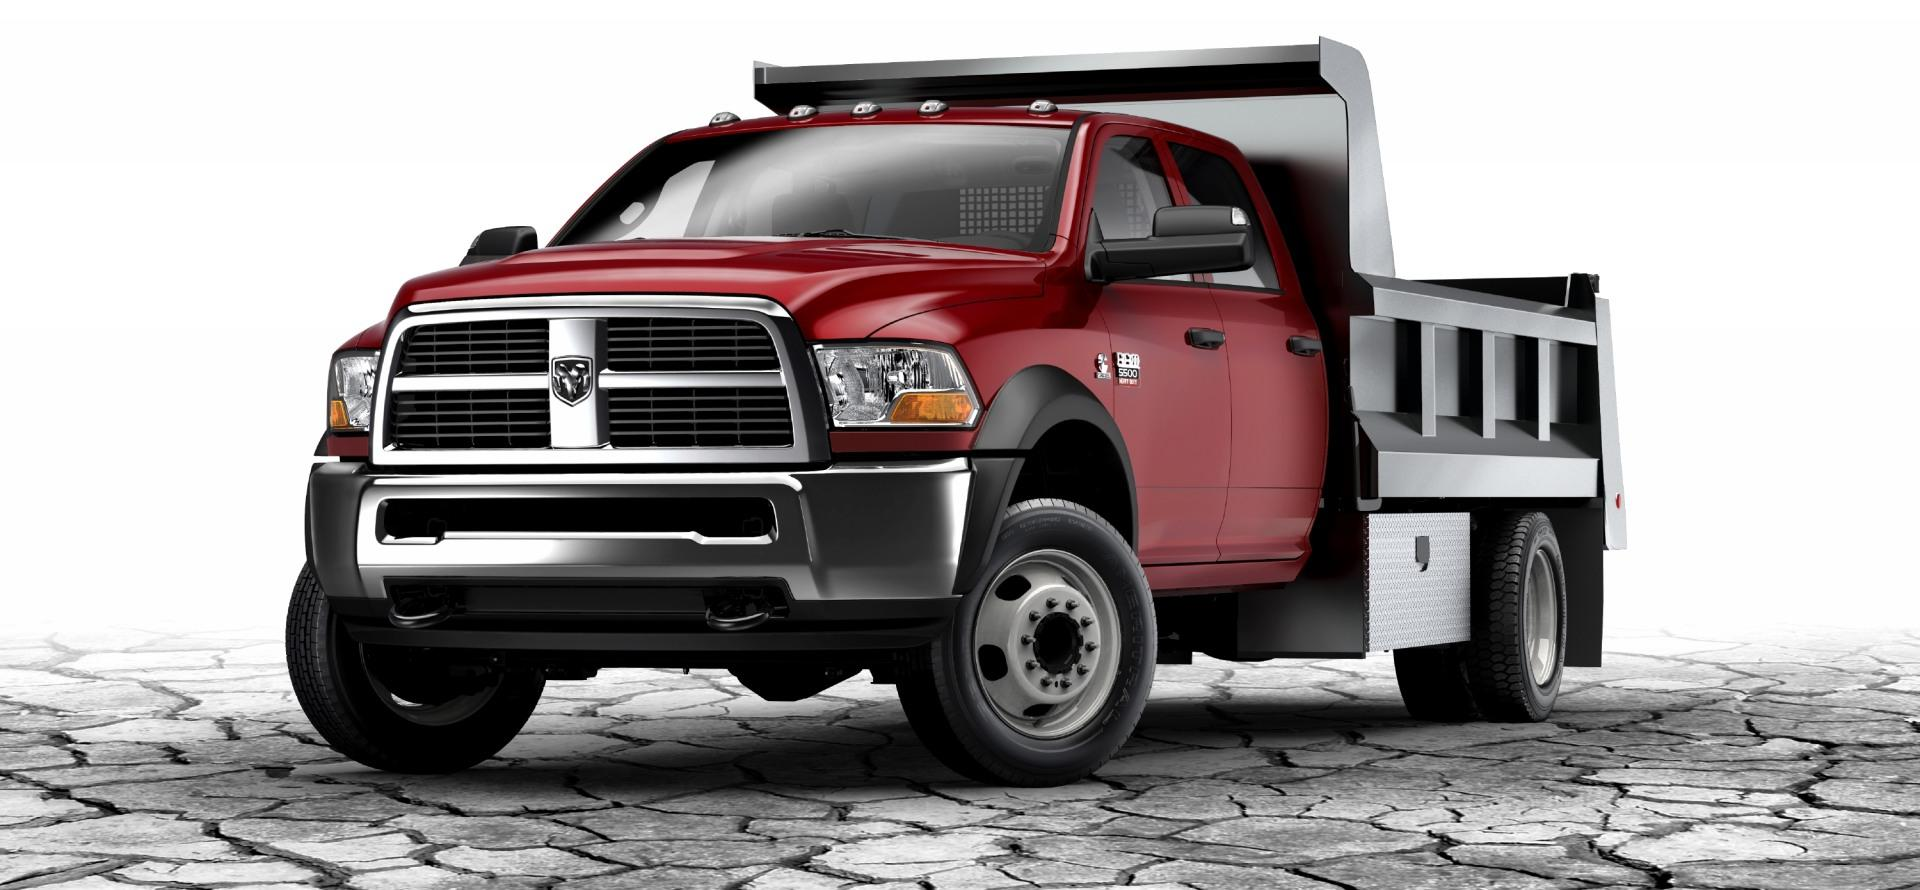 2011 Ram 3500 News and Information - conceptcarz.com